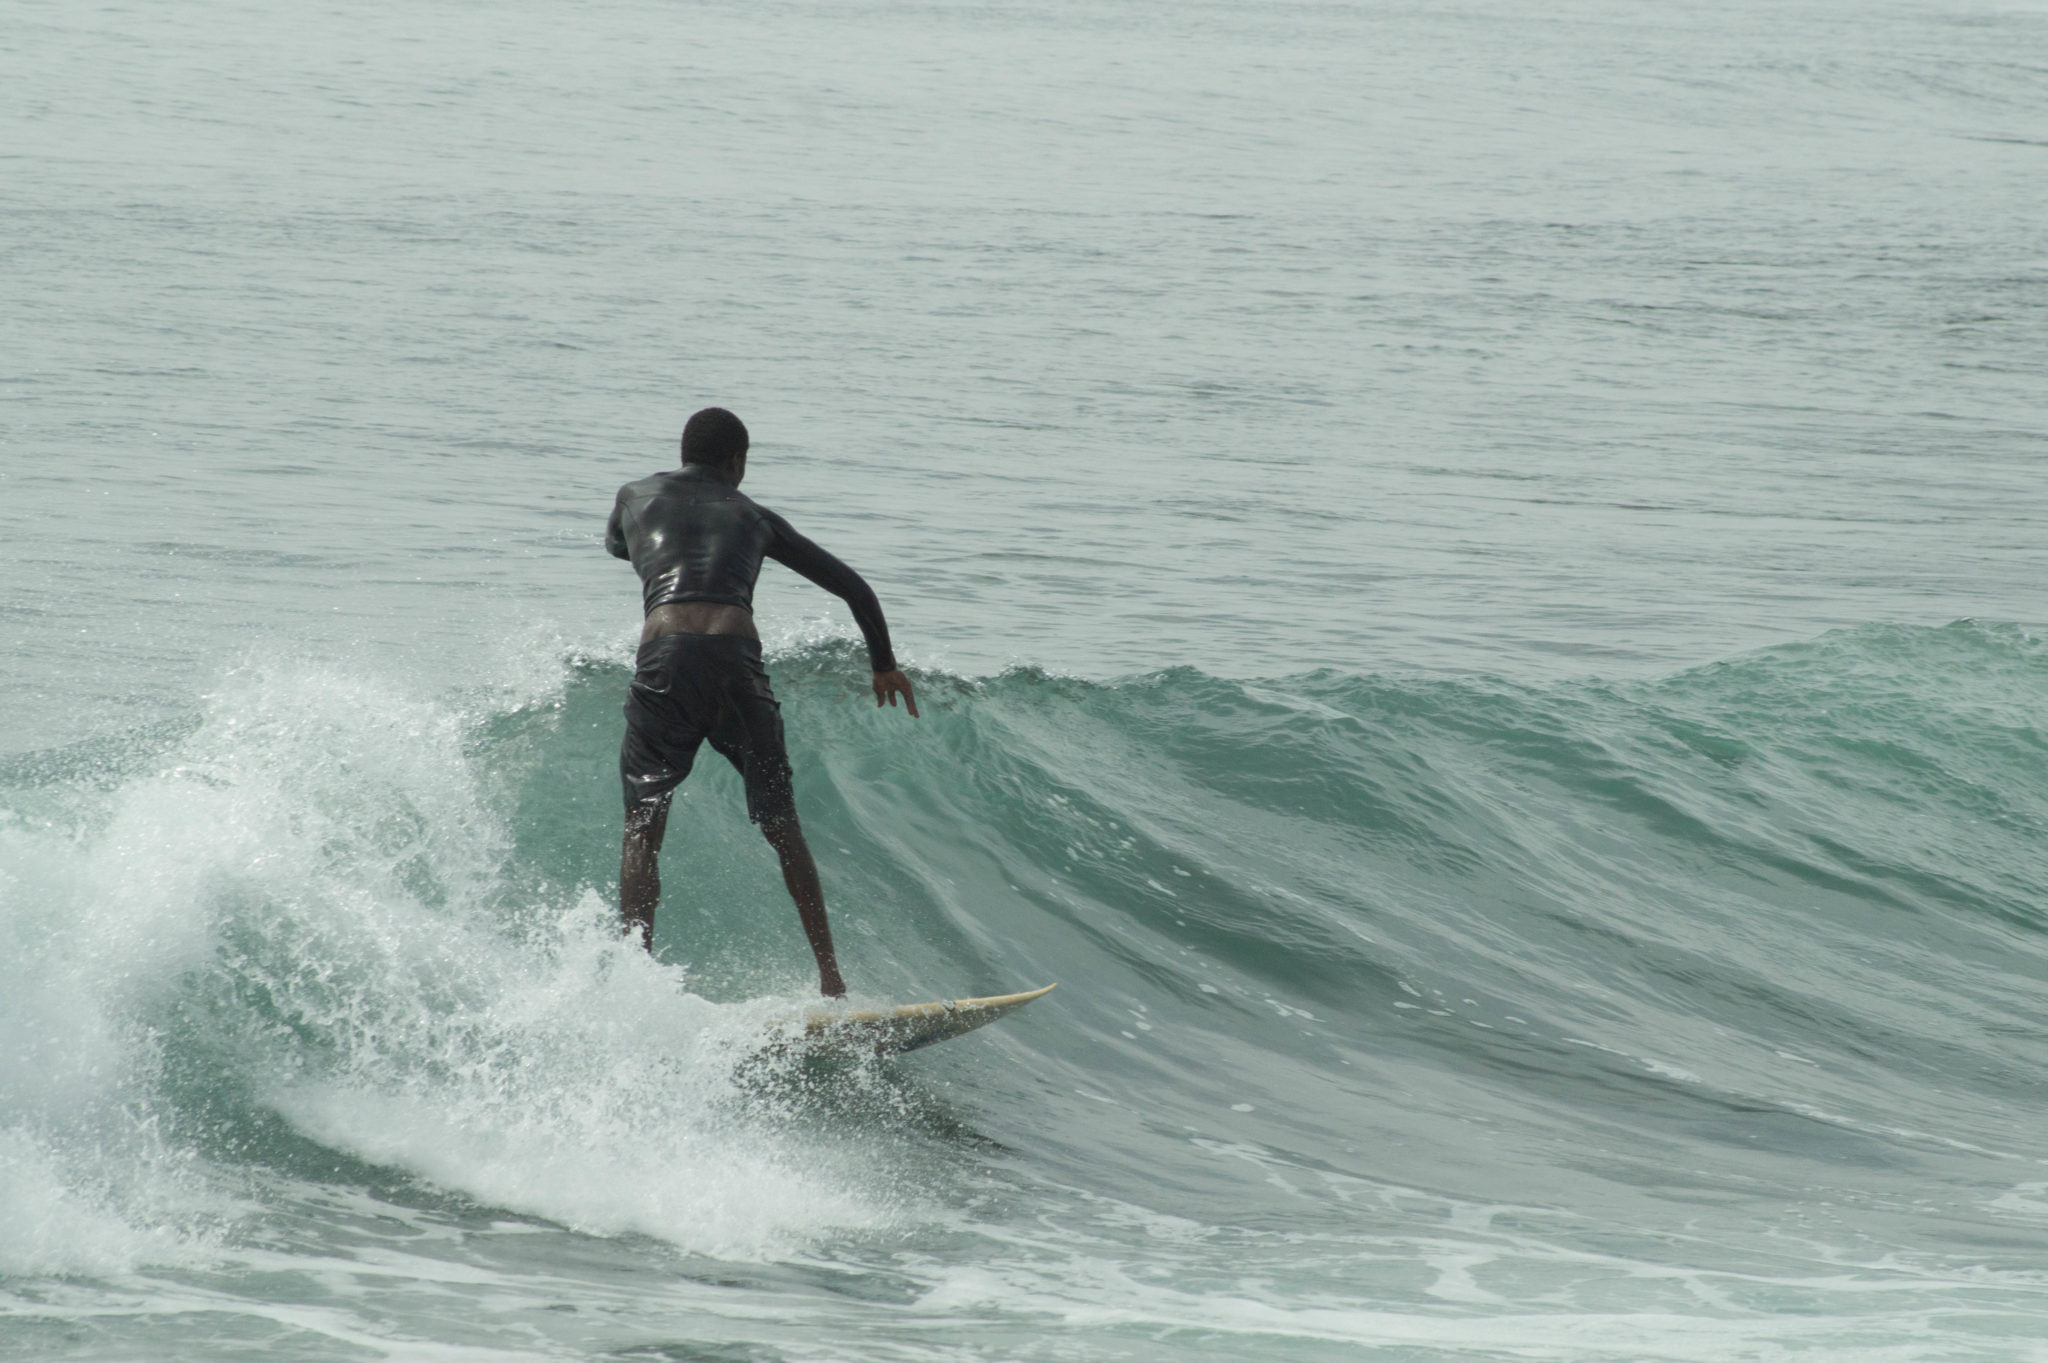 Senegal Travel Blog: Make sure to hit the waves in Dakar and enjoy an amazing surf session